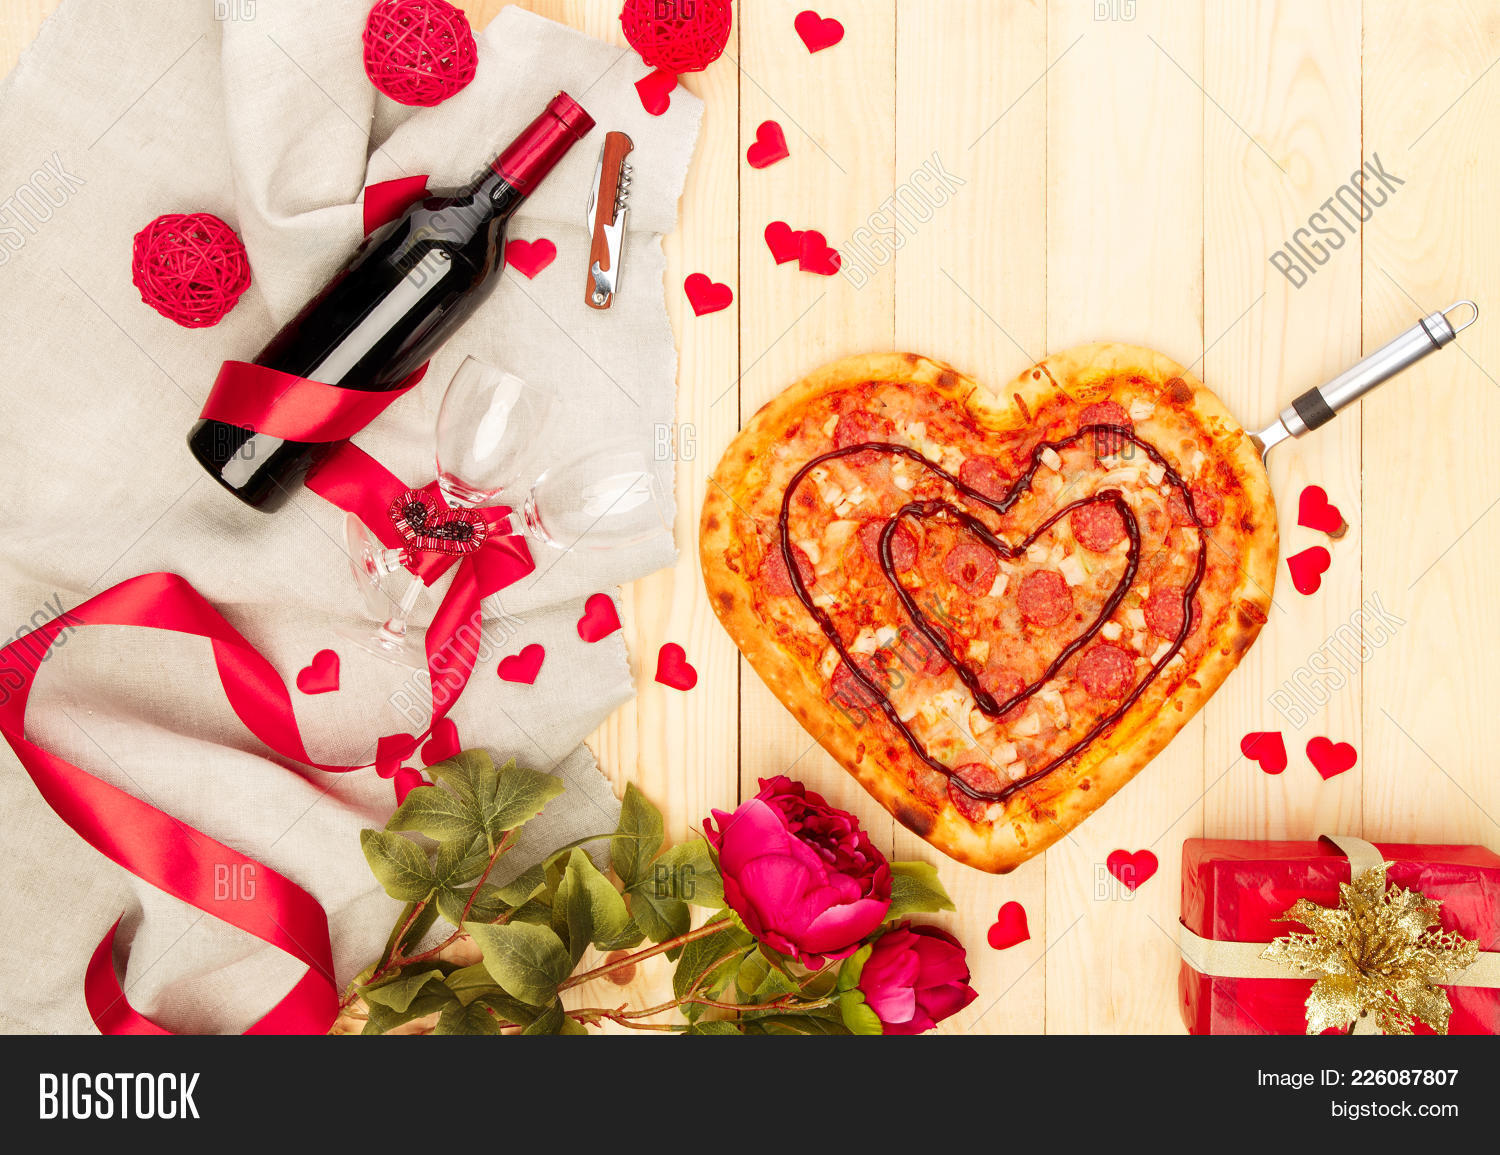 above,appointment,background,baked,board,bottle,brown,celebrate,cheese,closeup,concept,copyspace,corkscrew,cuisine,decor,delicious,dinner,drink,evening,flour,flower,food,gift,glass,heart,italian,italy,love,mozzarella,nutrition,pepper,pepperoni,pizza,red,ribbon,romance,romantic,rustic,shape,shaped,symbol,table,tasty,tomato,valentine,vegetable,wine,wood,wooden,yellow